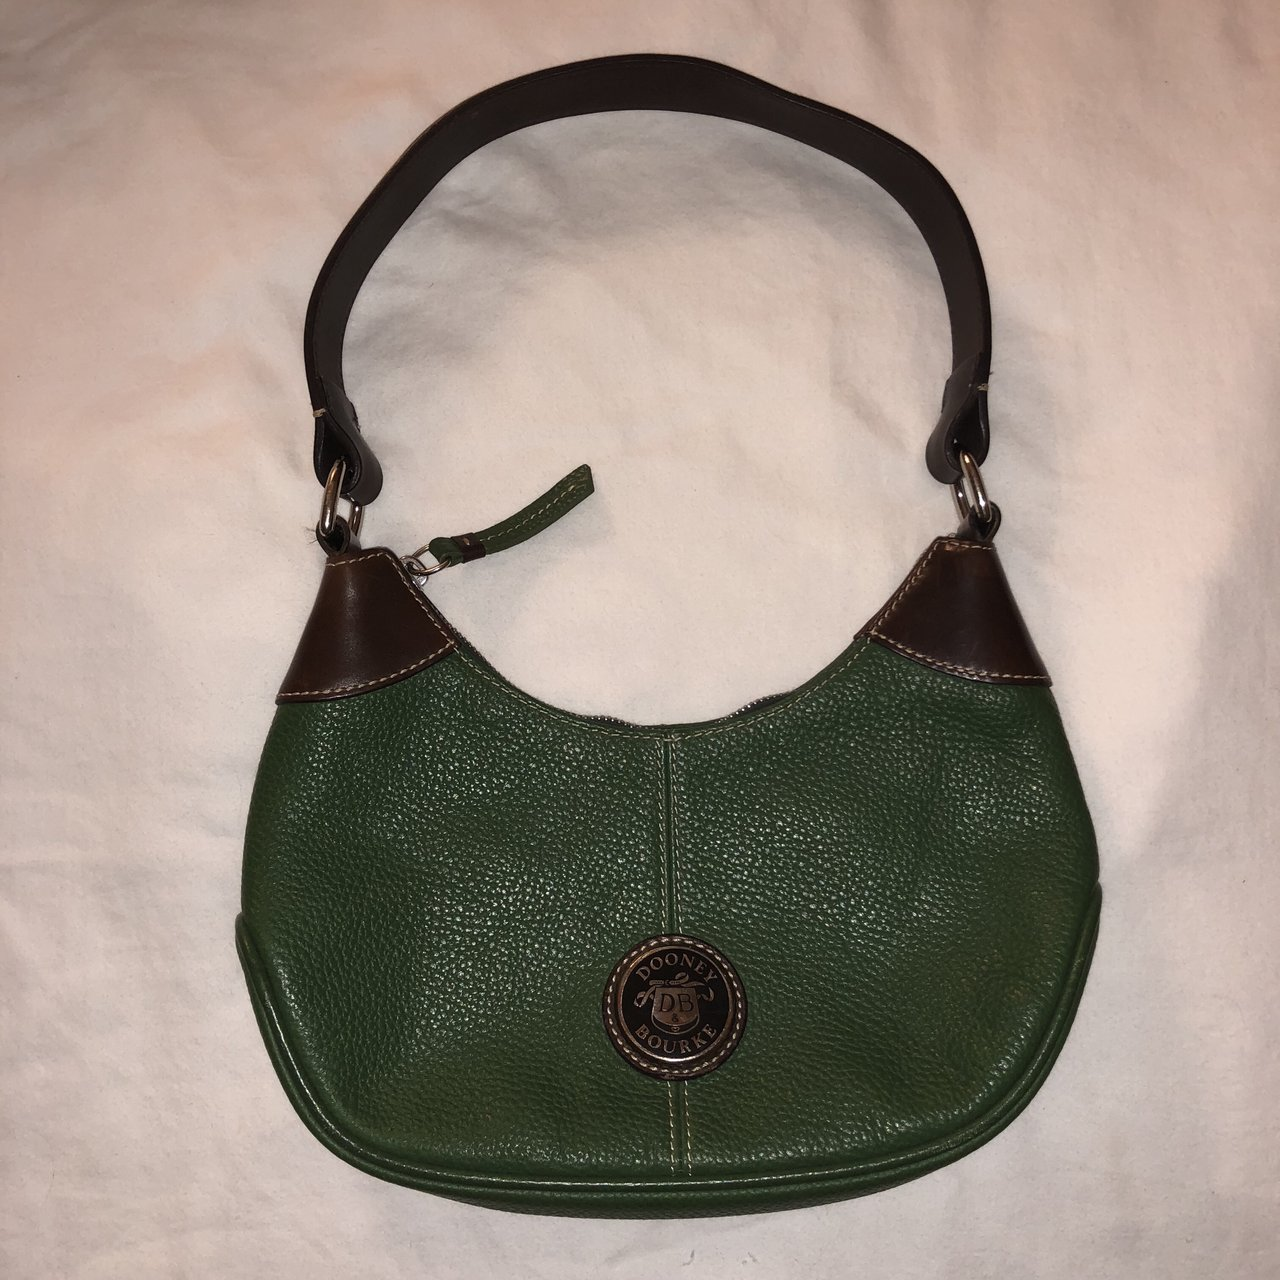 Authentic Dooney and Bourke Green All Weather Leather Small - Depop 09f174cdc64df